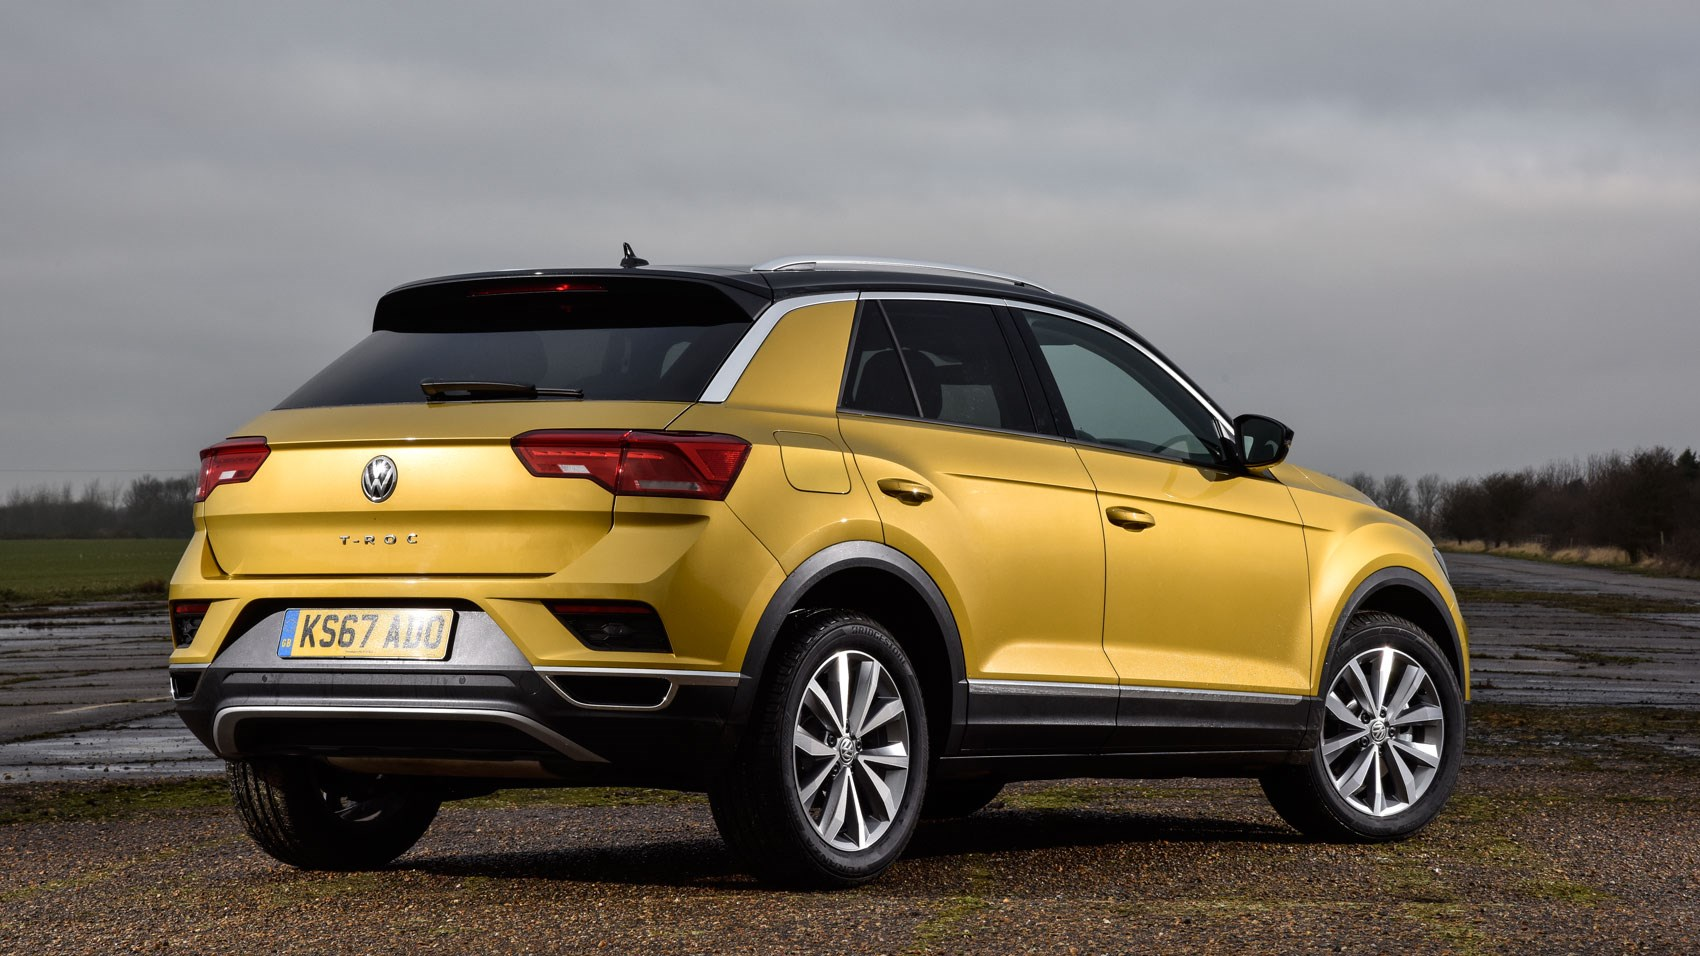 0 Down Lease Deals >> VW T-Roc 1.0 TSI Design (2018) review | CAR Magazine